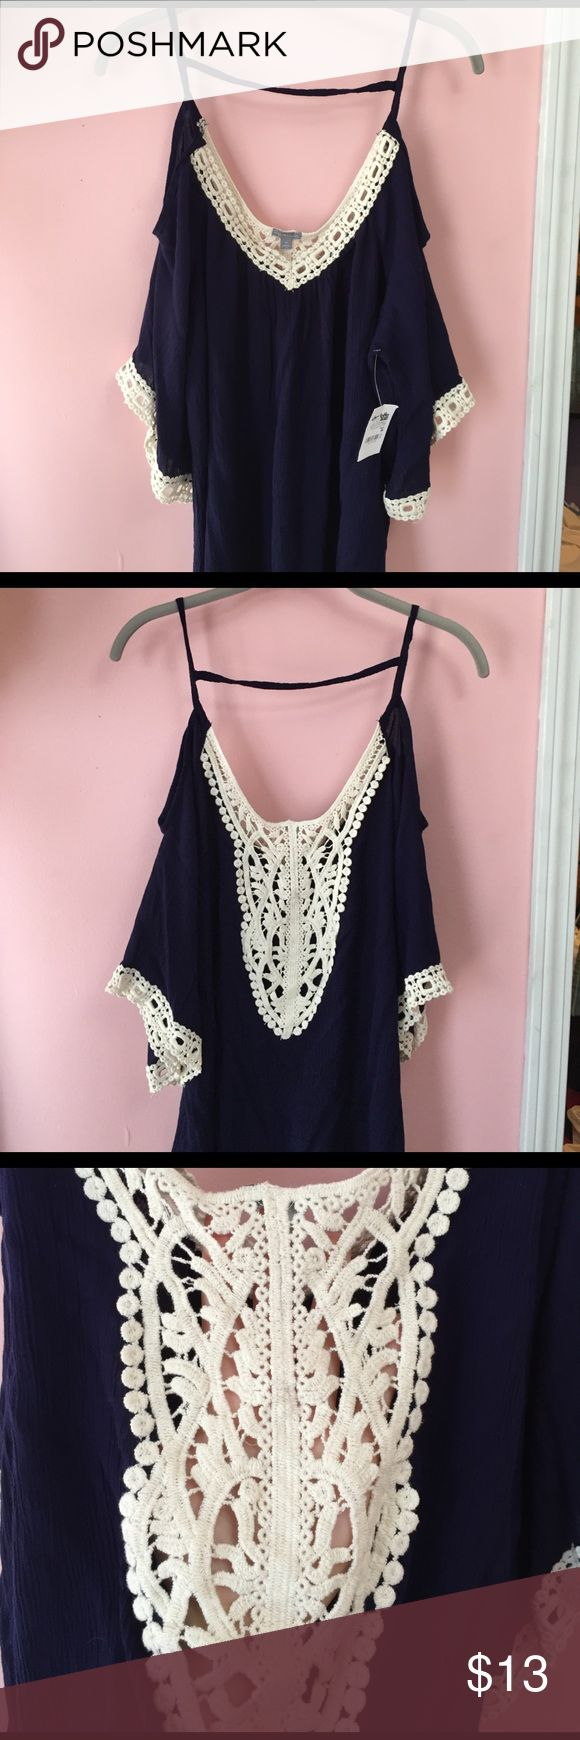 Navy Blue top Perfect navy blue top falls off shoulders. Would be a great beach top as a cover up or just an easy throw on shirt. Charlotte Russe Tops Blouses